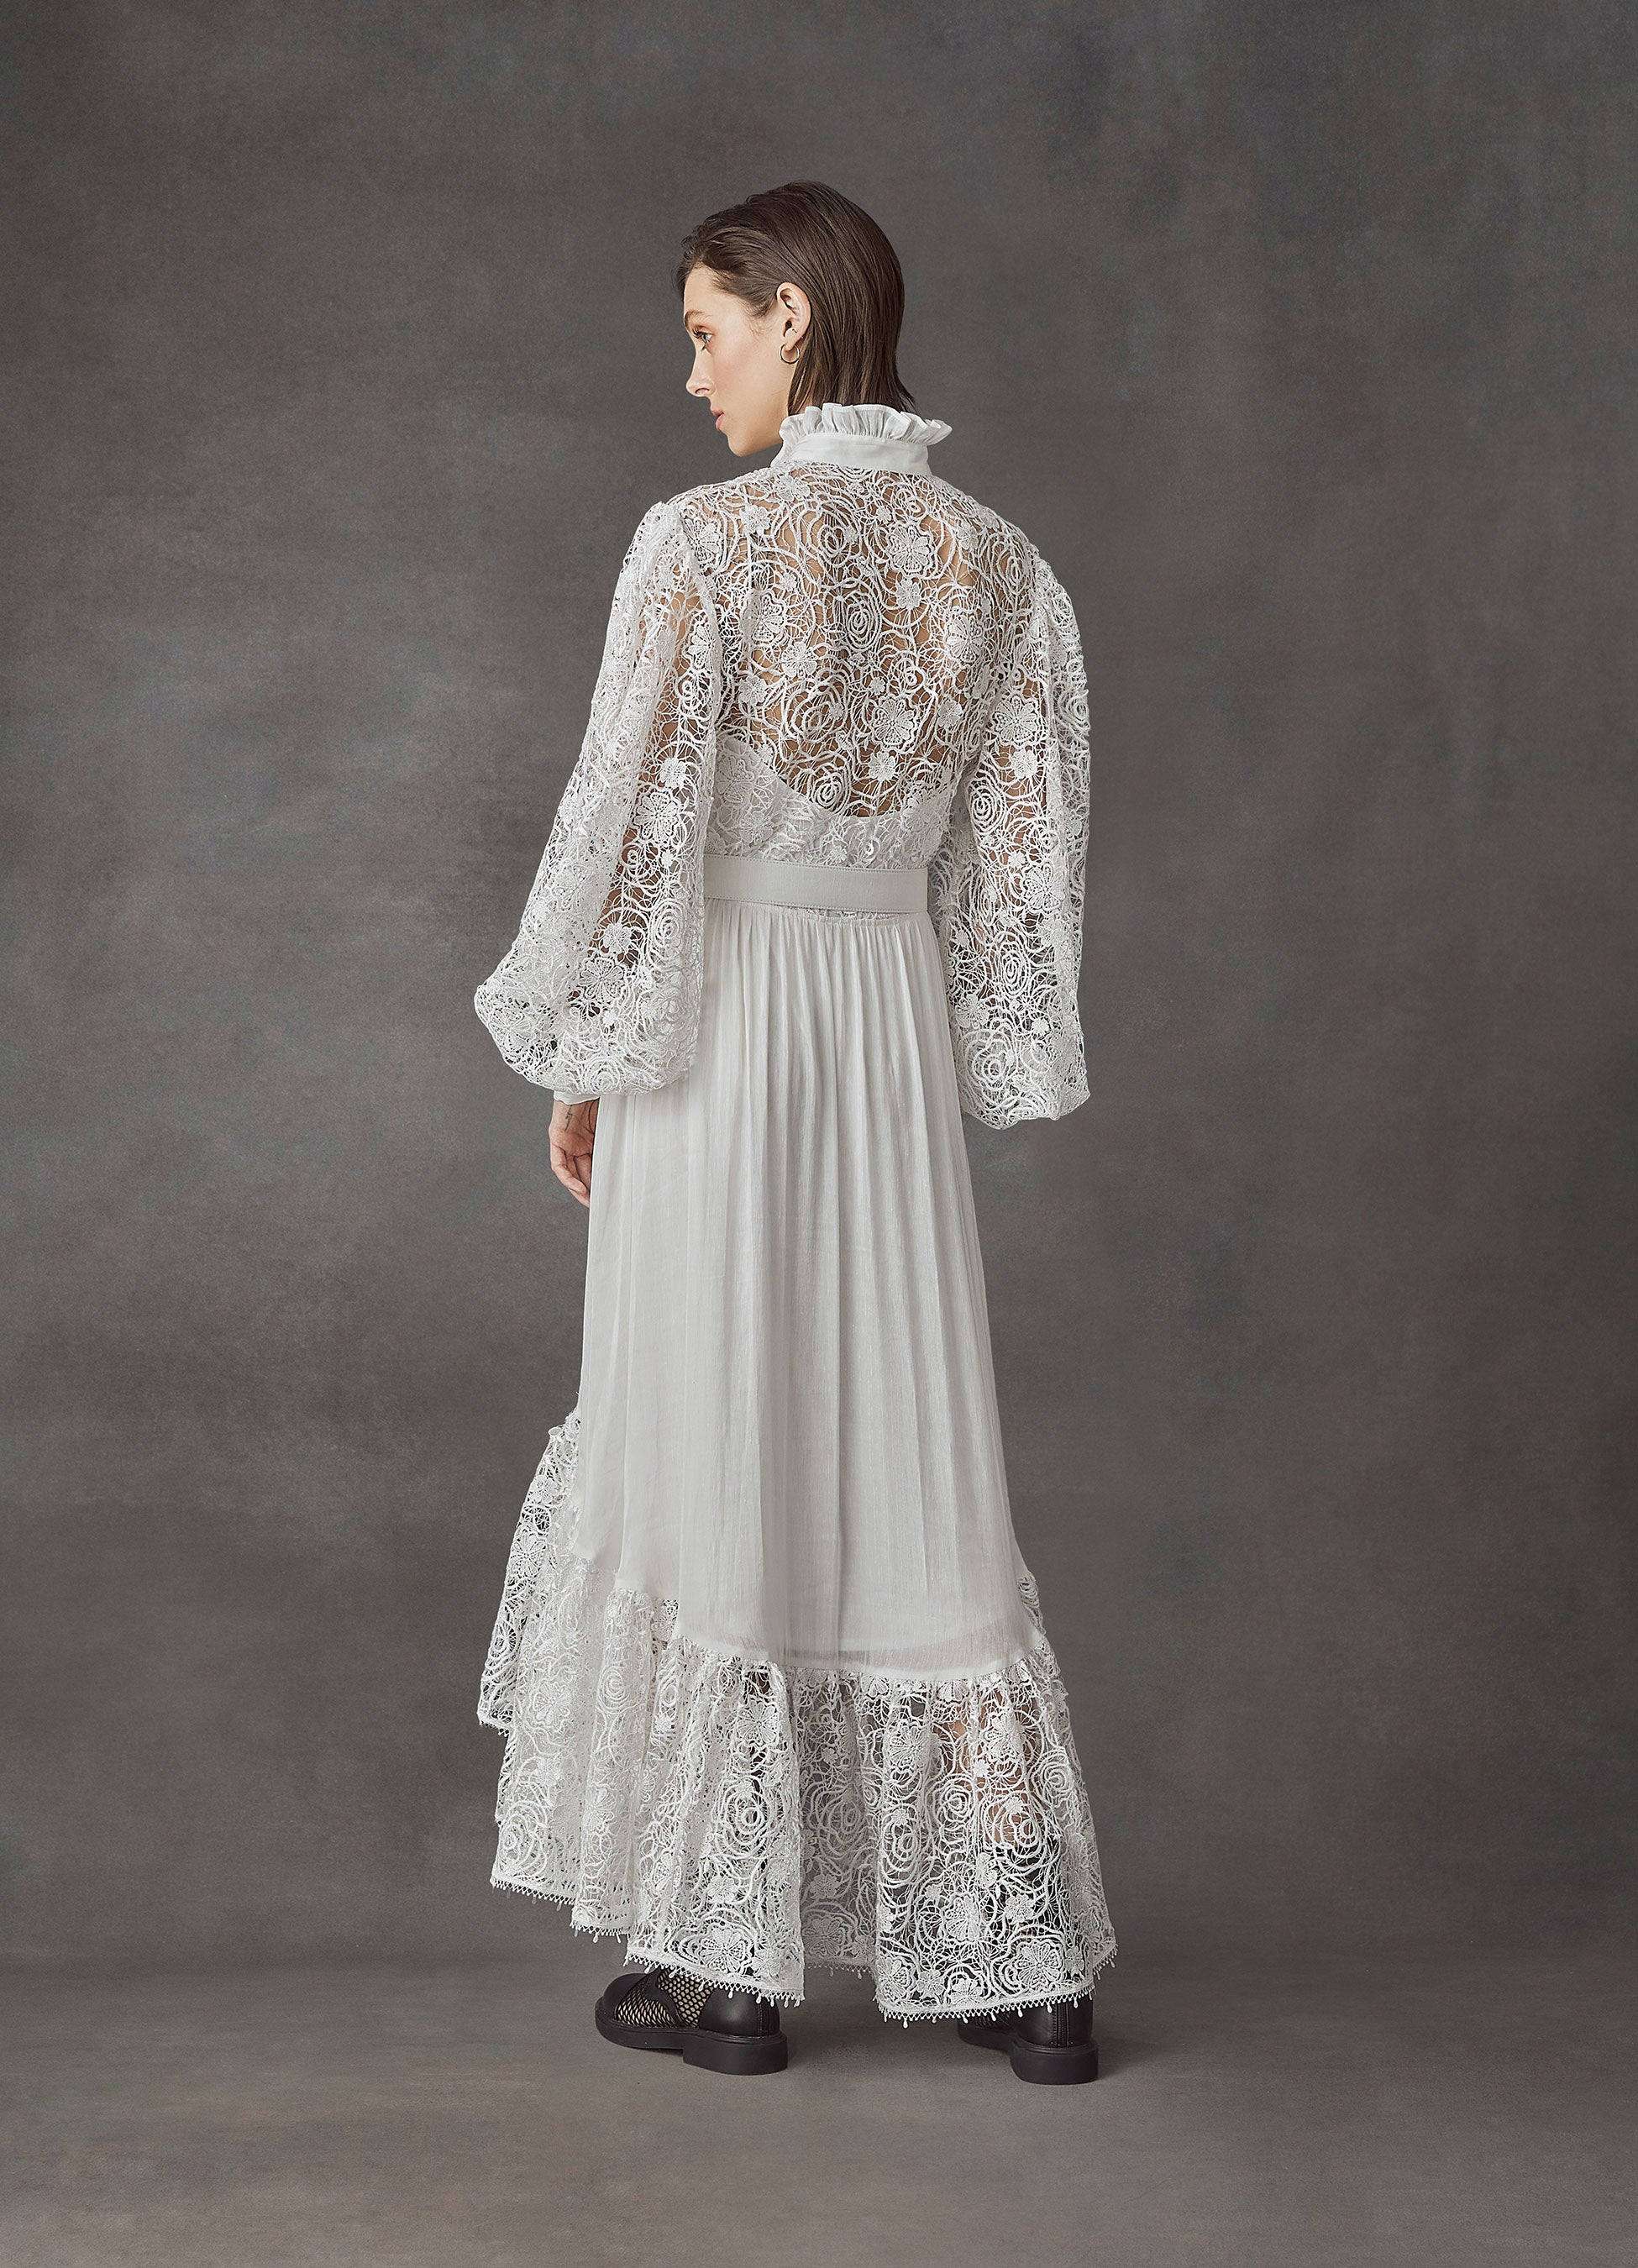 Immaculate Lace Dress